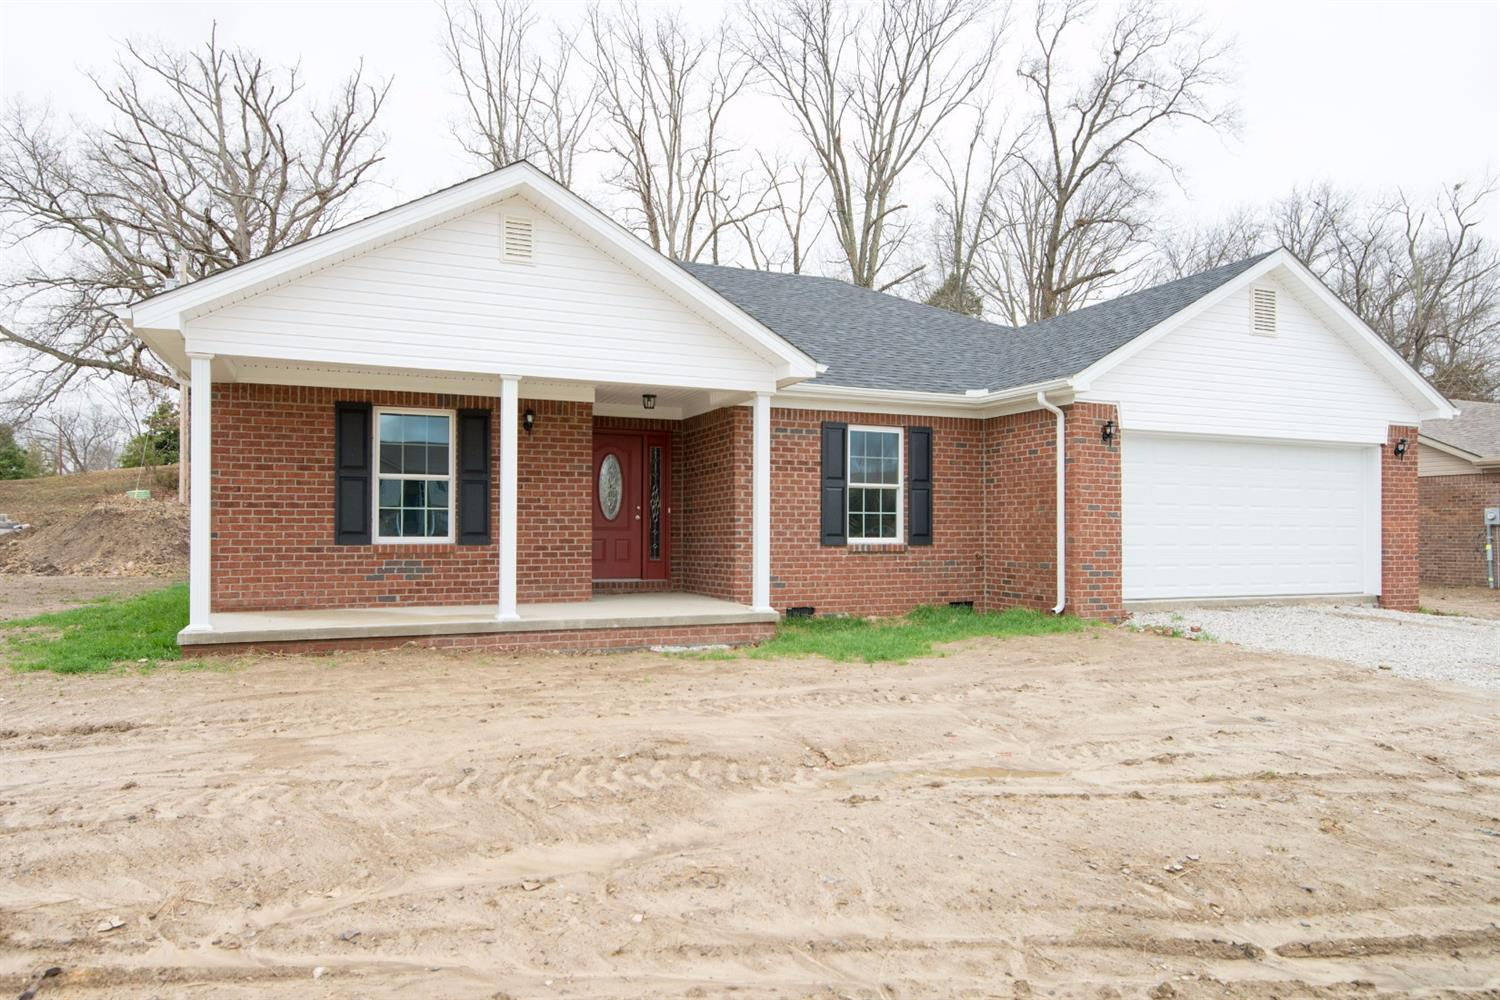 Home For Sale at 978 Scaffold Cane Rd, Berea, KY 40403